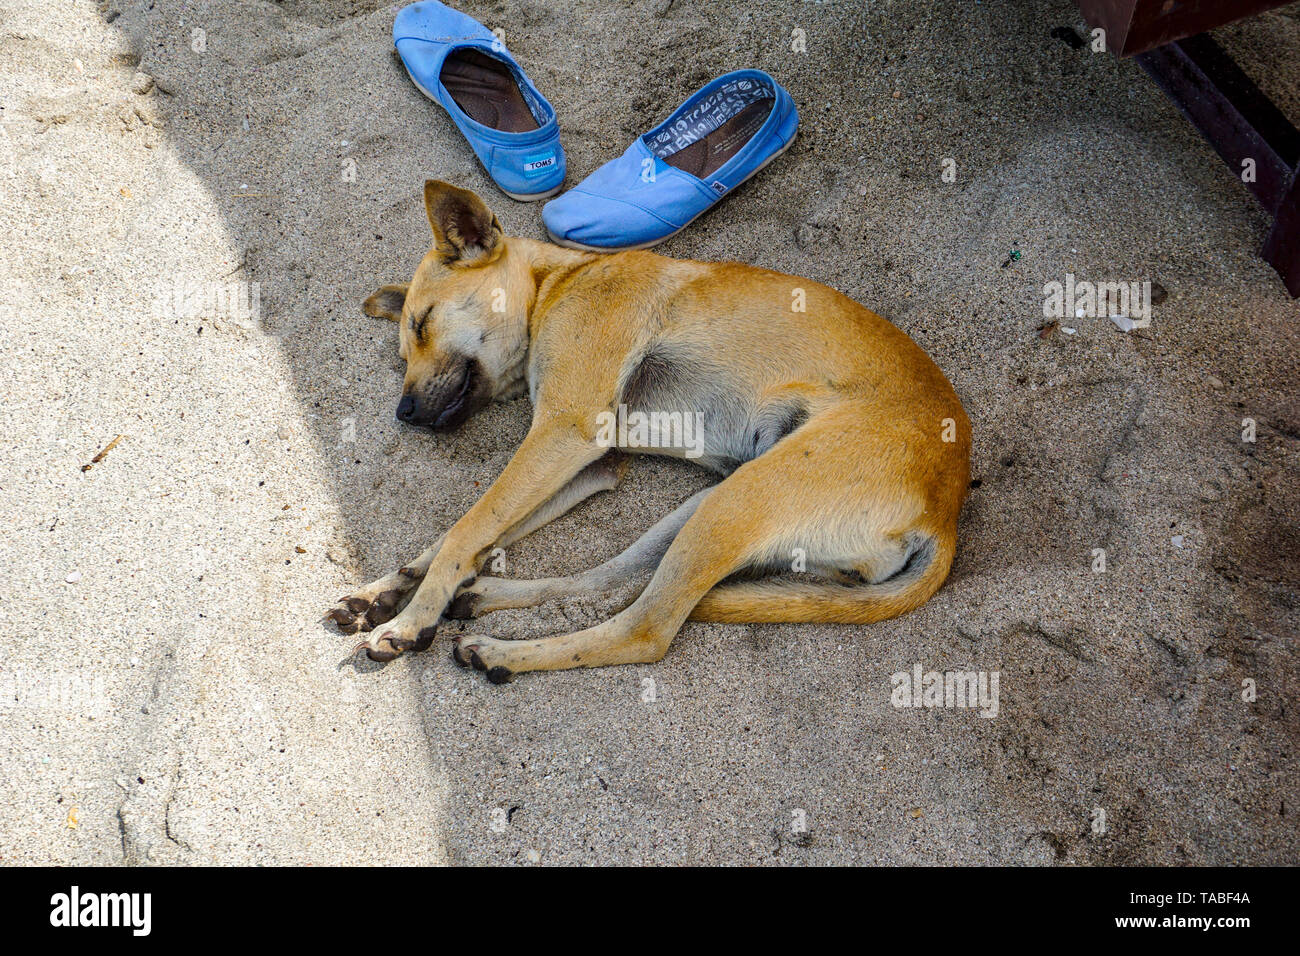 Yellow stray dog sleeping on the sandy beach. - Stock Image